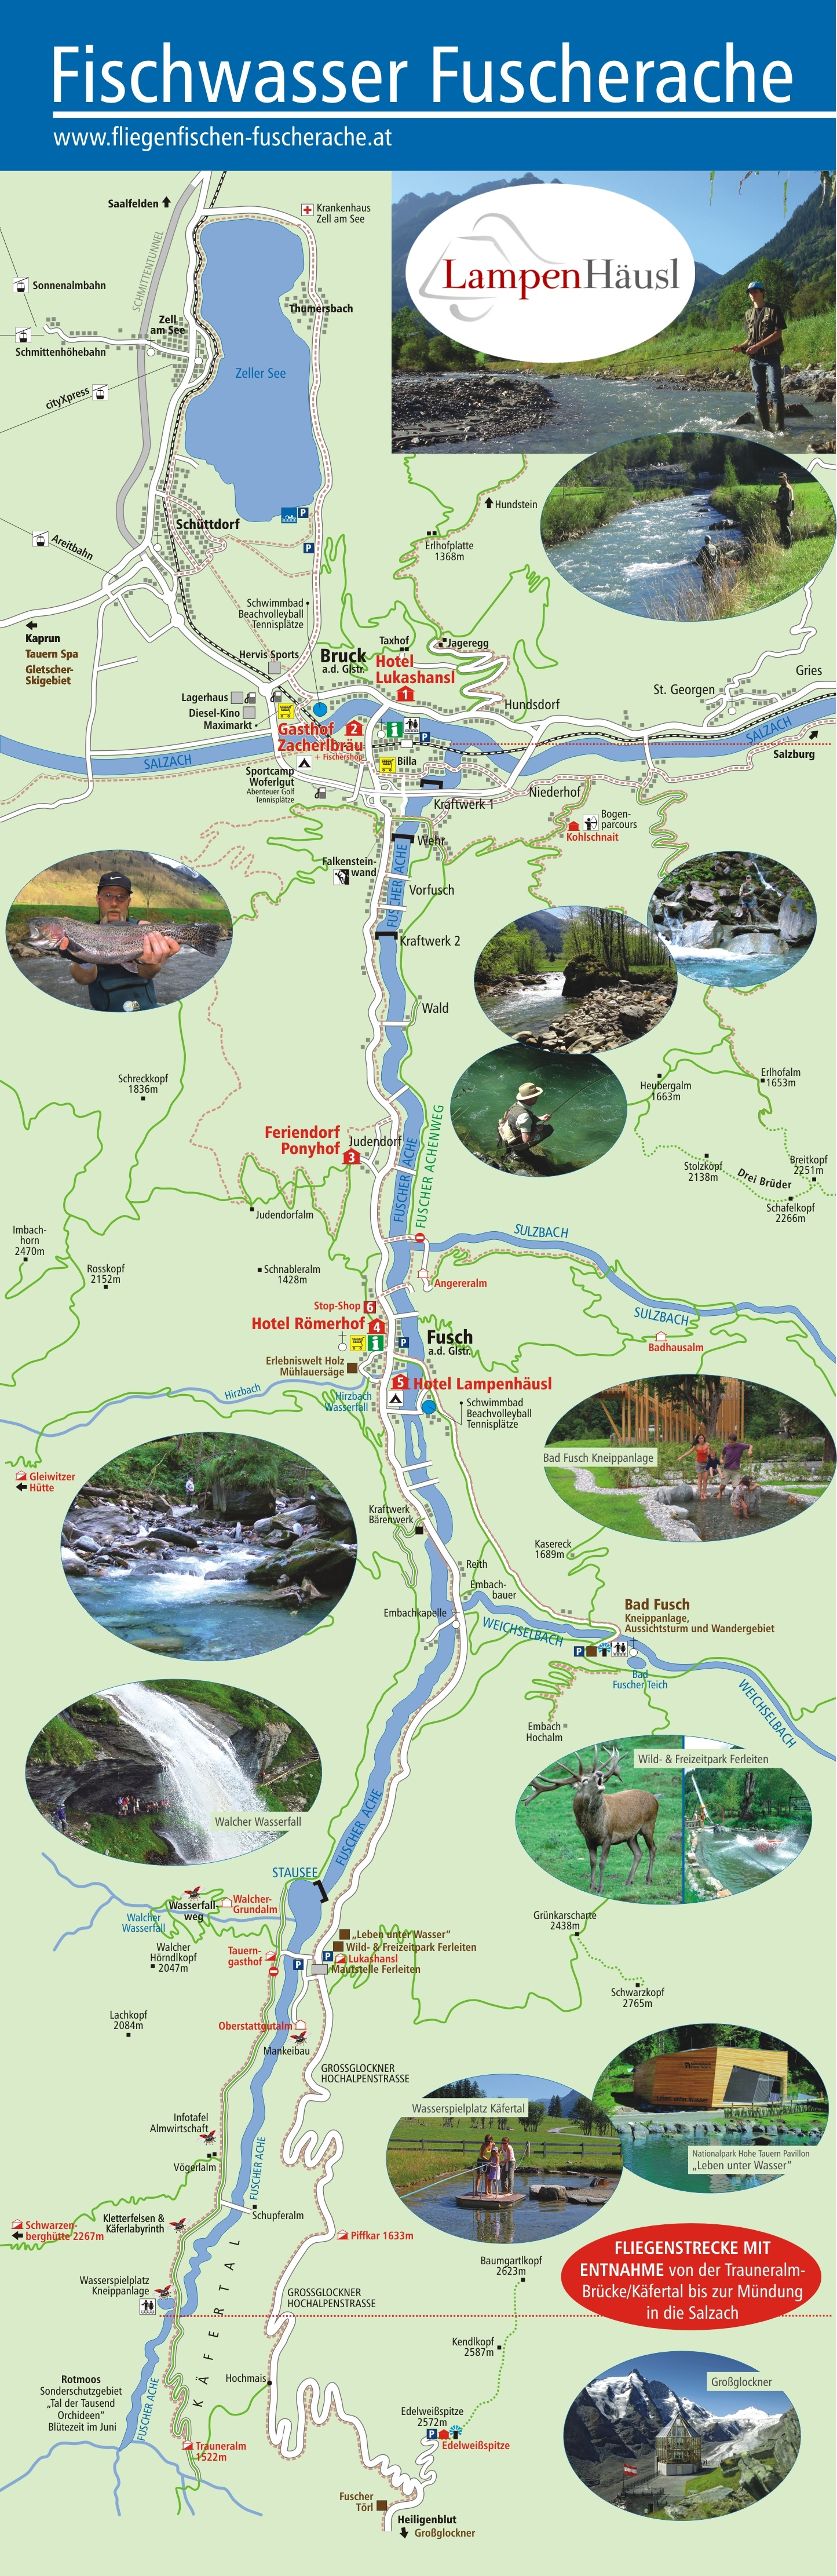 Overview Map Fly fishing waters Fuscher Ache